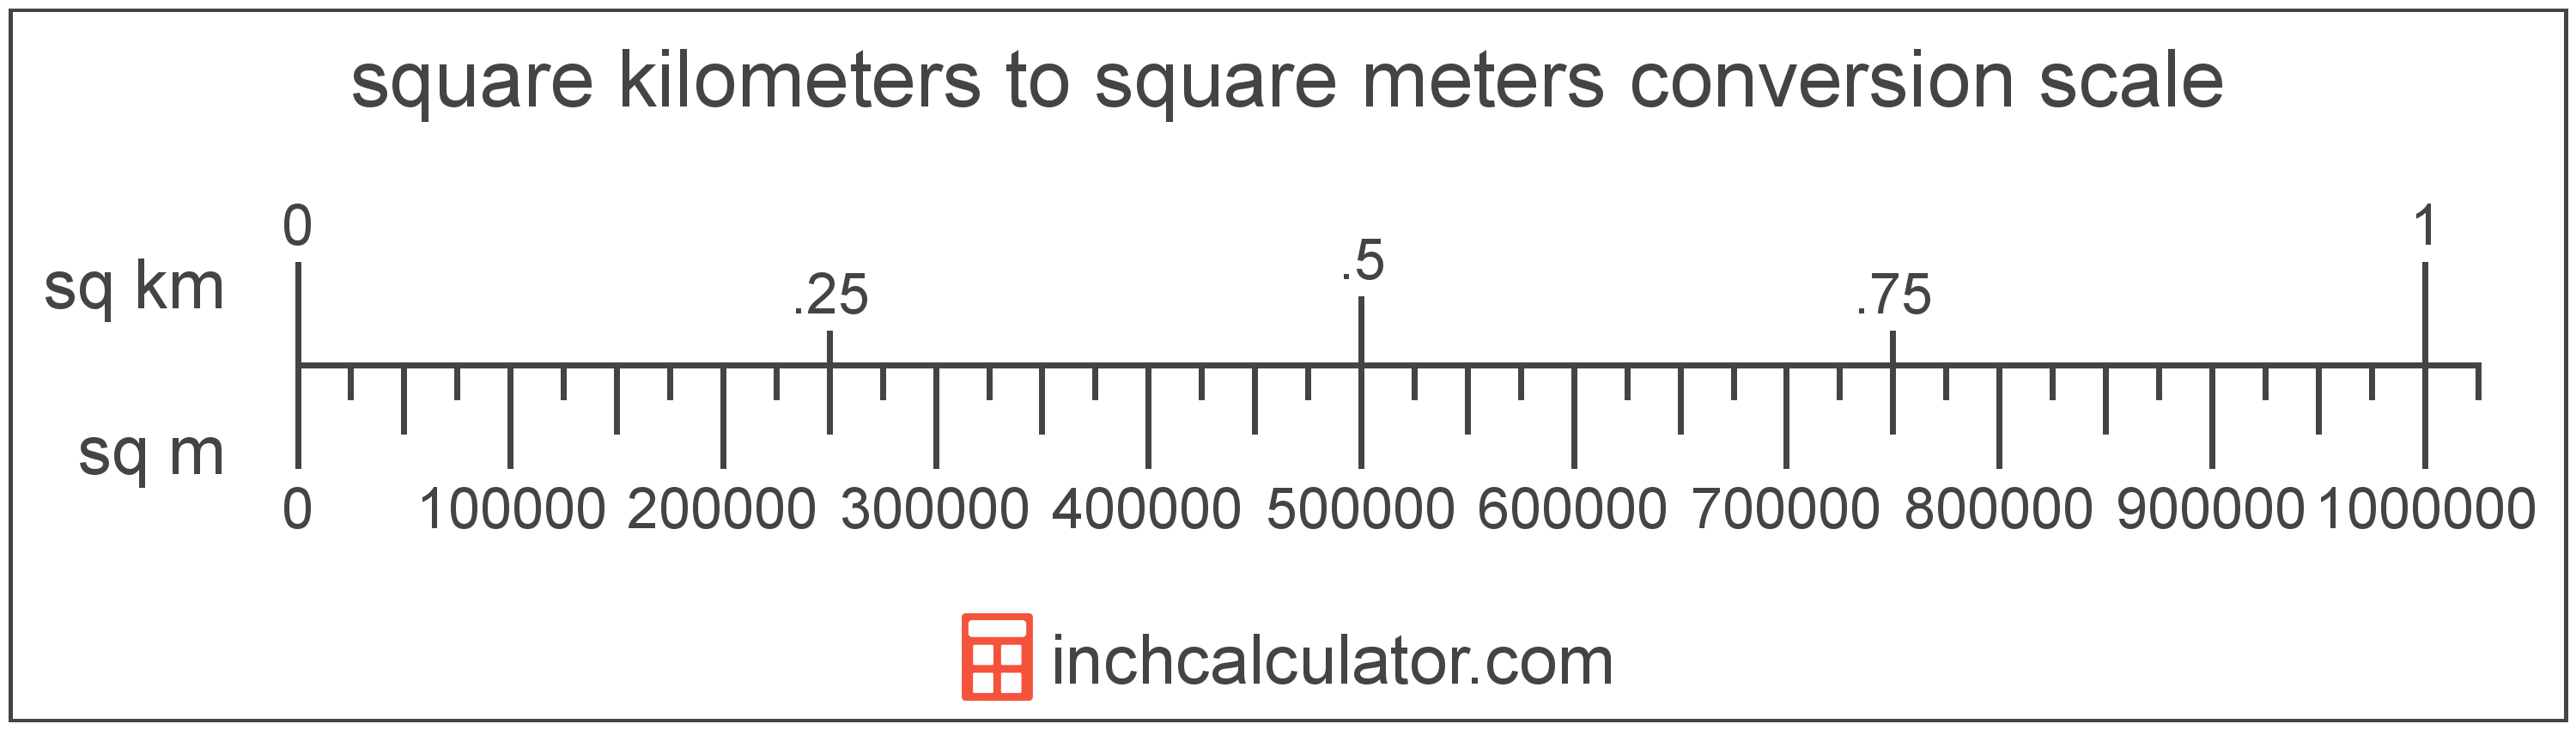 conversion scale showing square kilometers and equivalent square meters area values